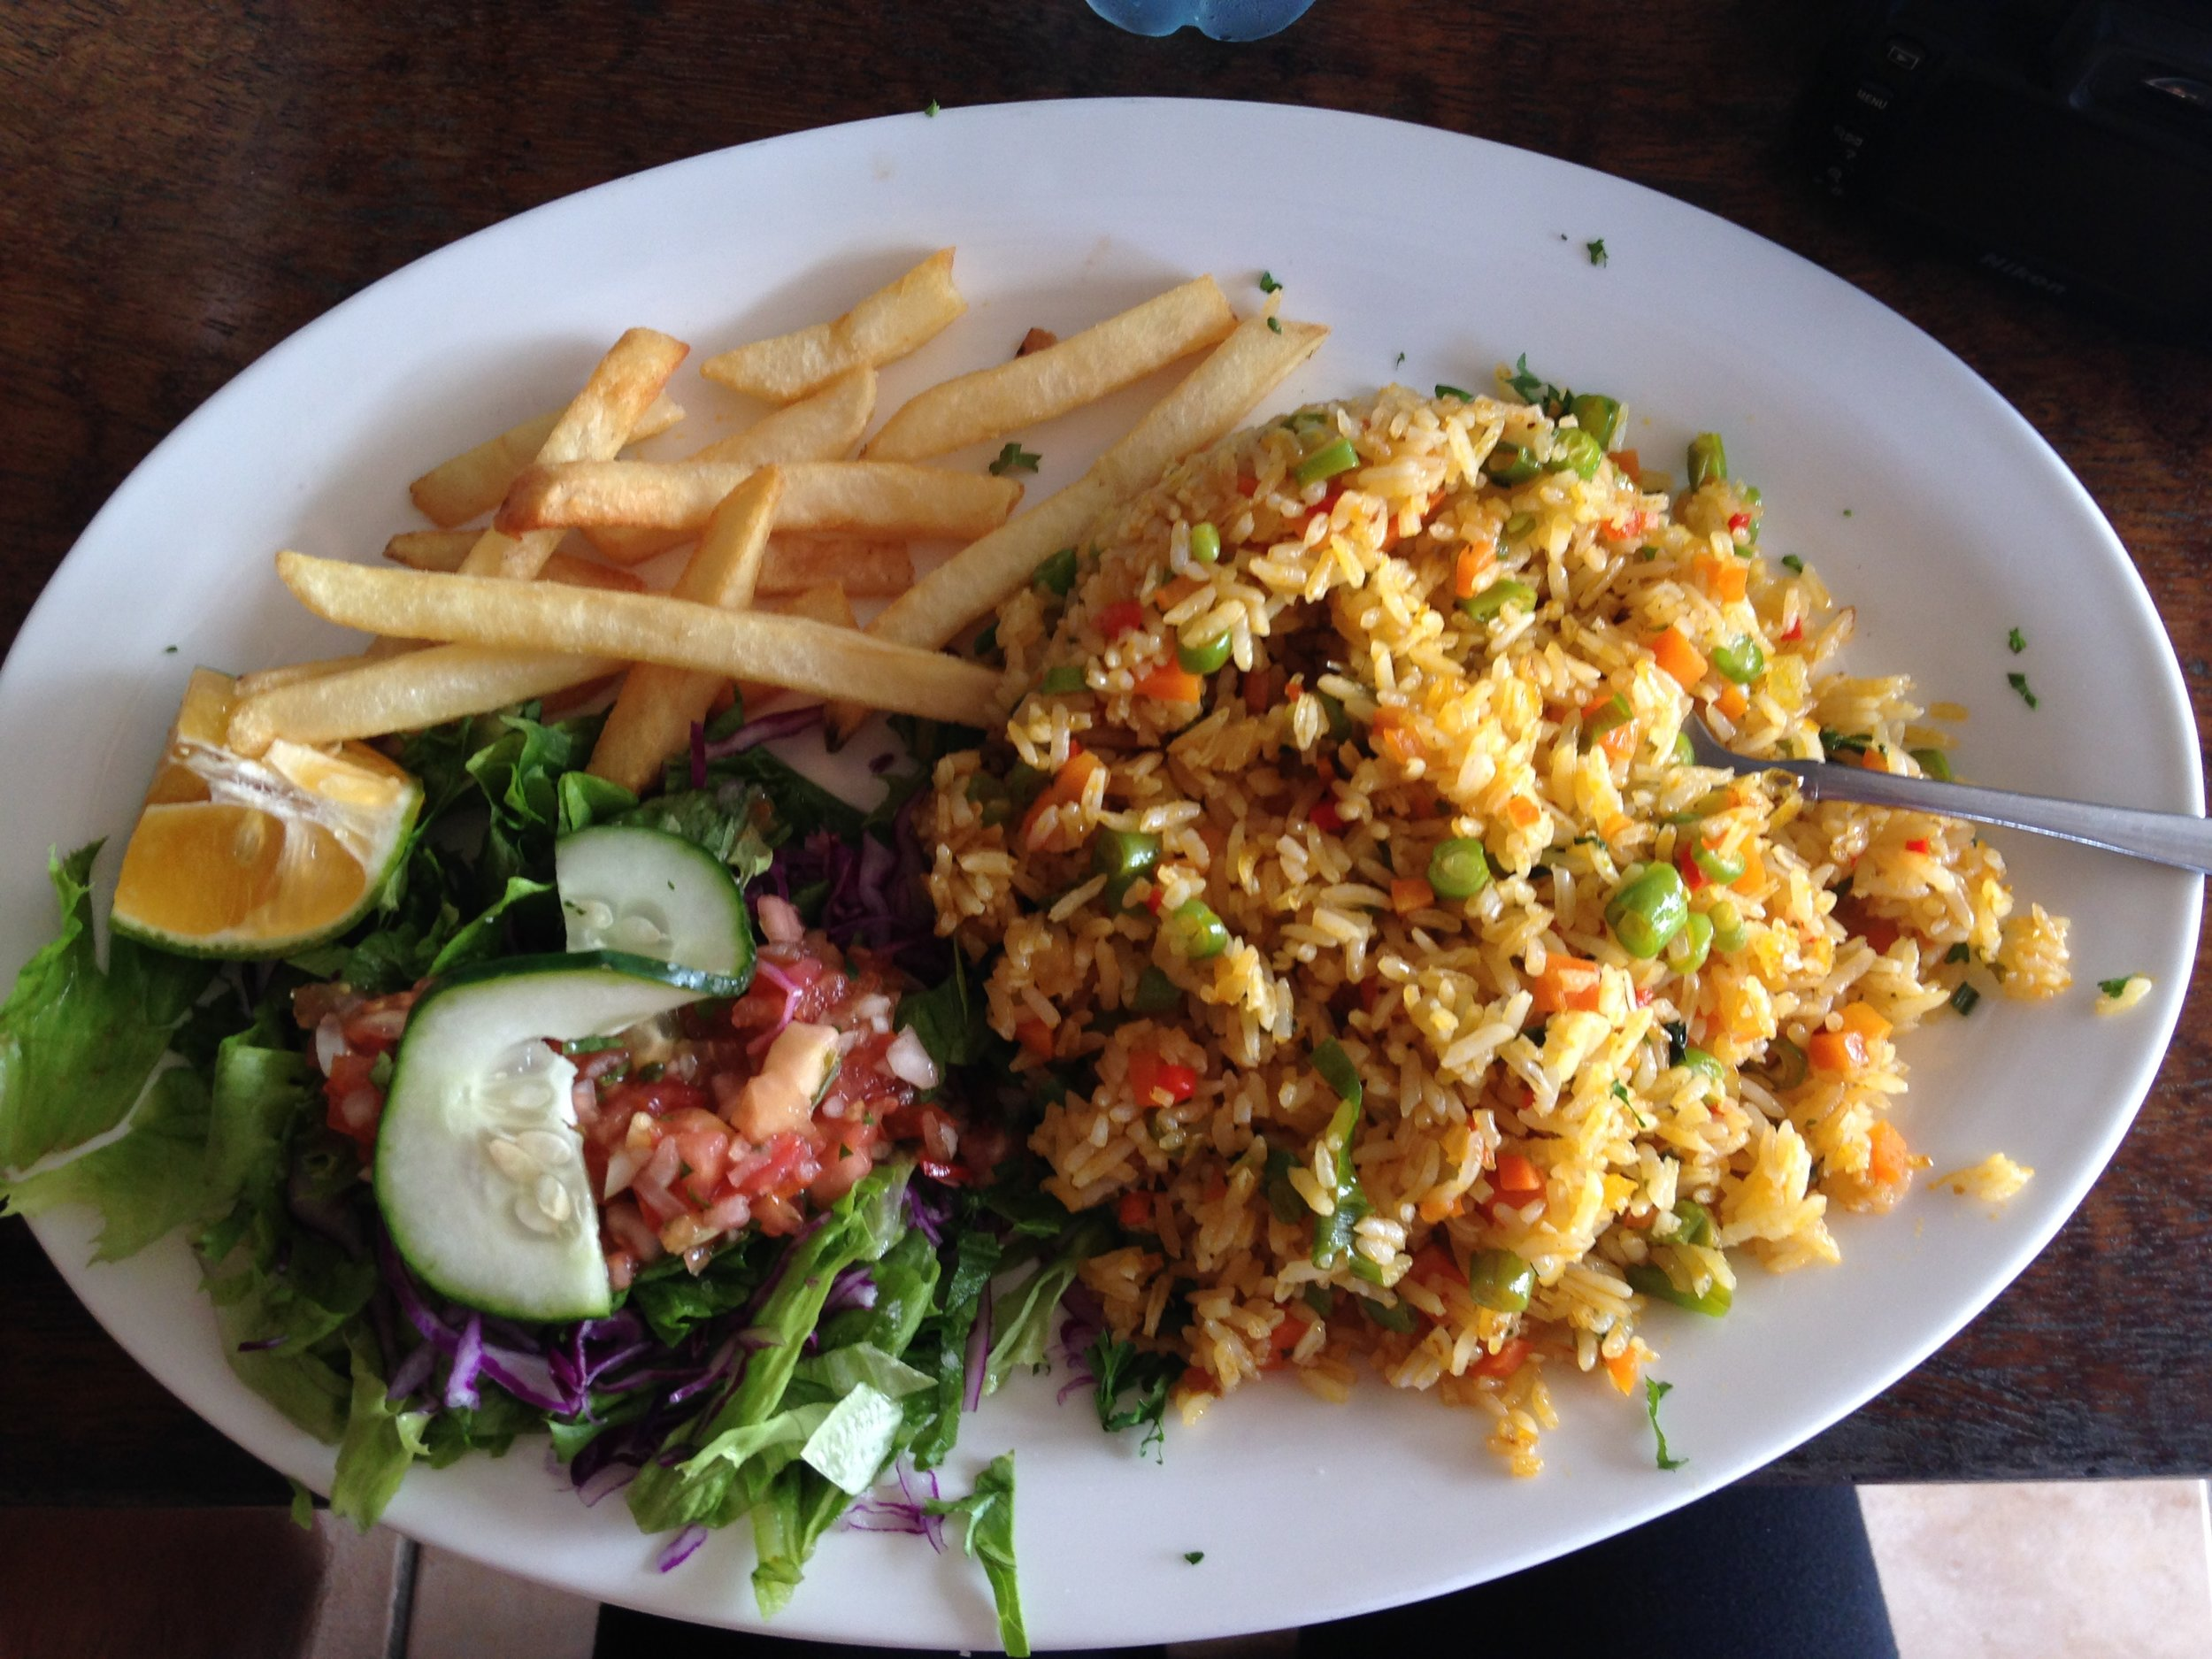 Arroz con pollo, exactly how it is served in all Costa Rican restaurants, with french fries and a side salad